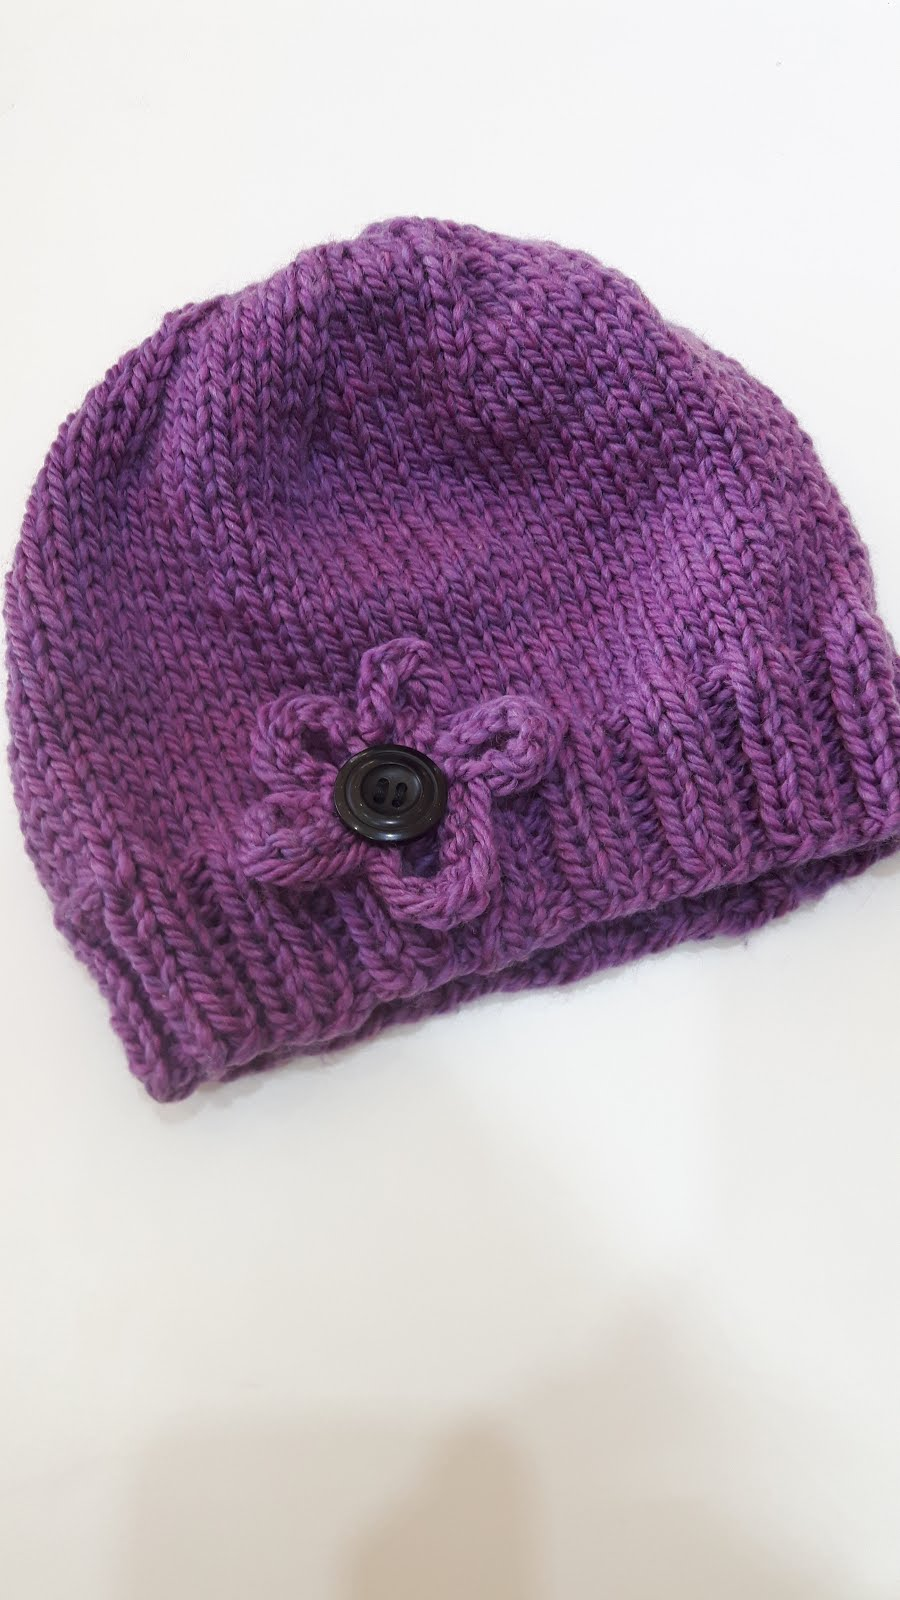 Knit your first Hat!